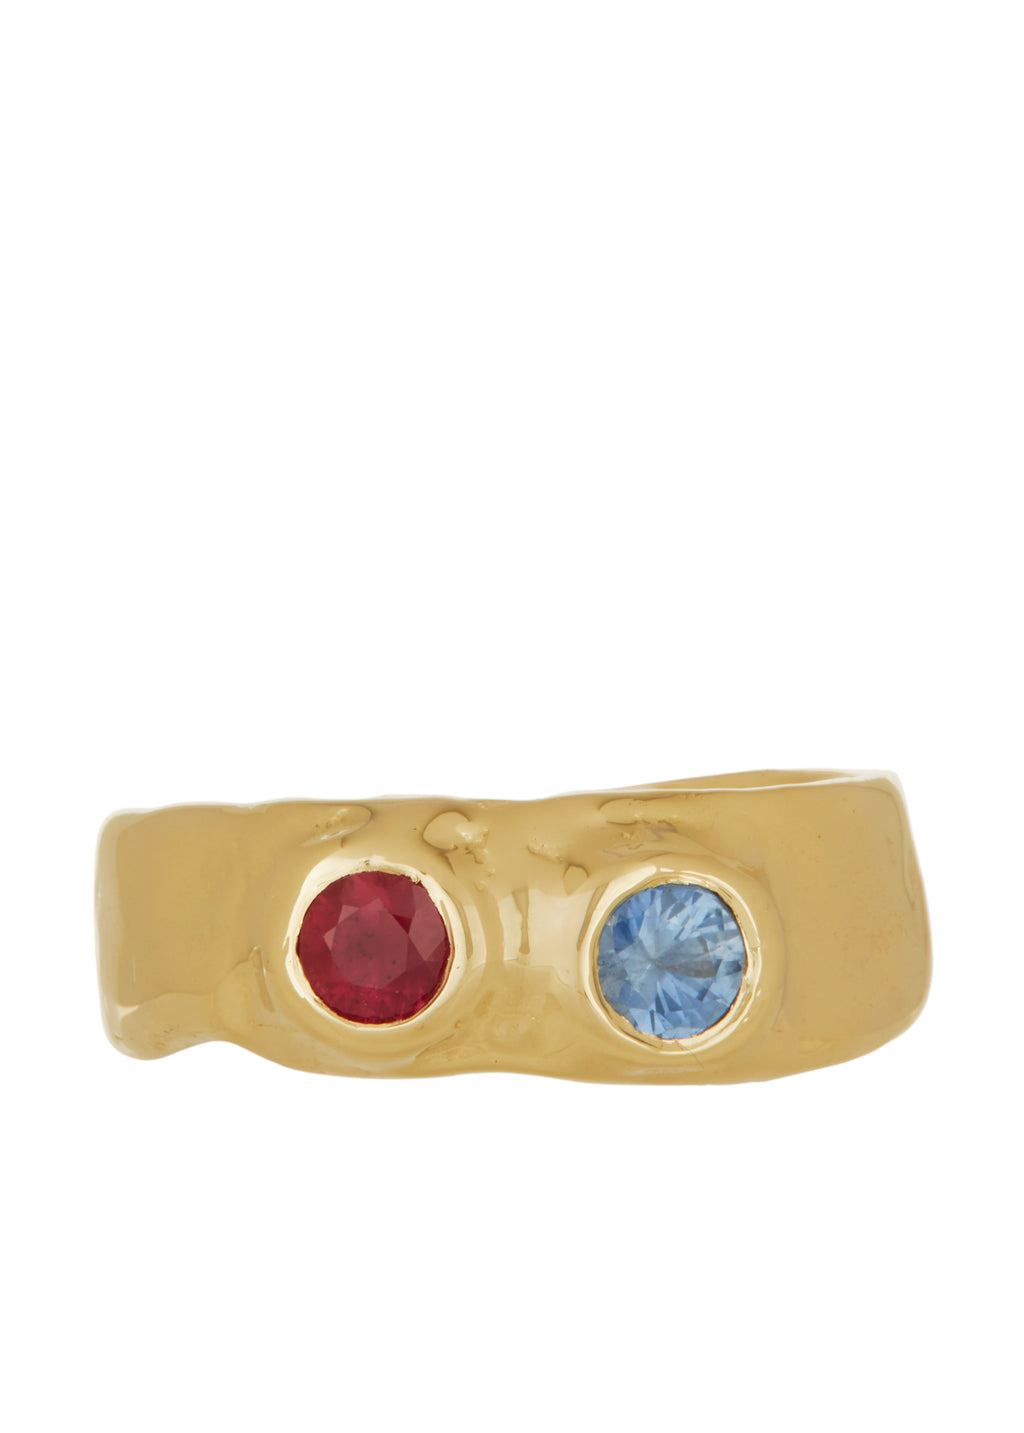 Felt Ring Divine Faceted with Ruby & Sapphire in 14k